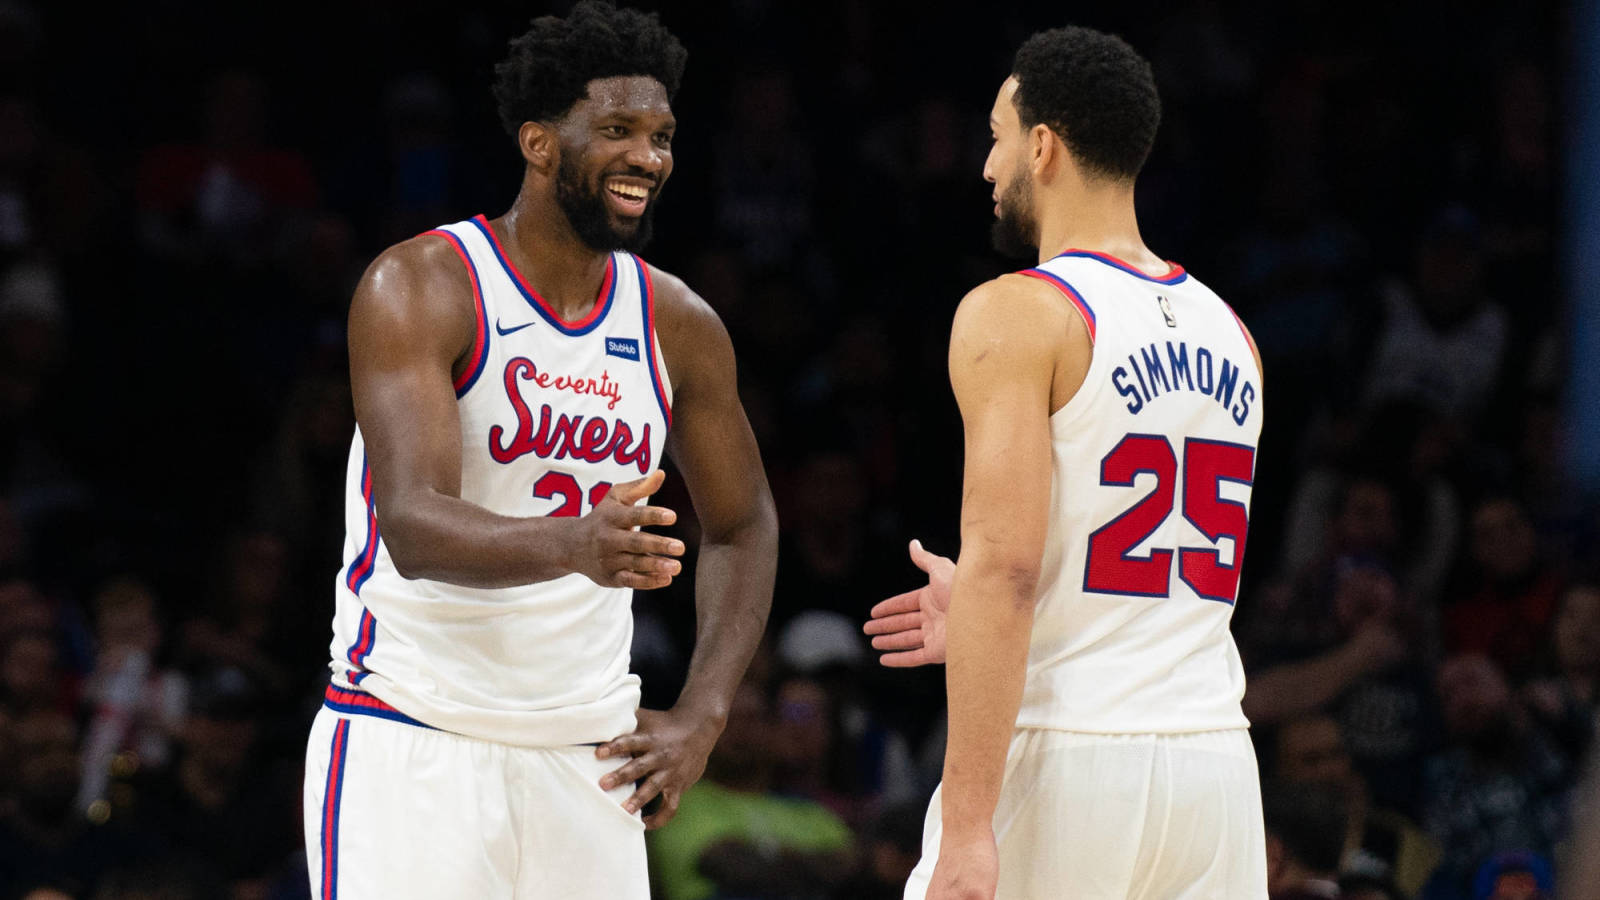 Joel Embiid: Chatter about Ben Simmons issues is 'BS'